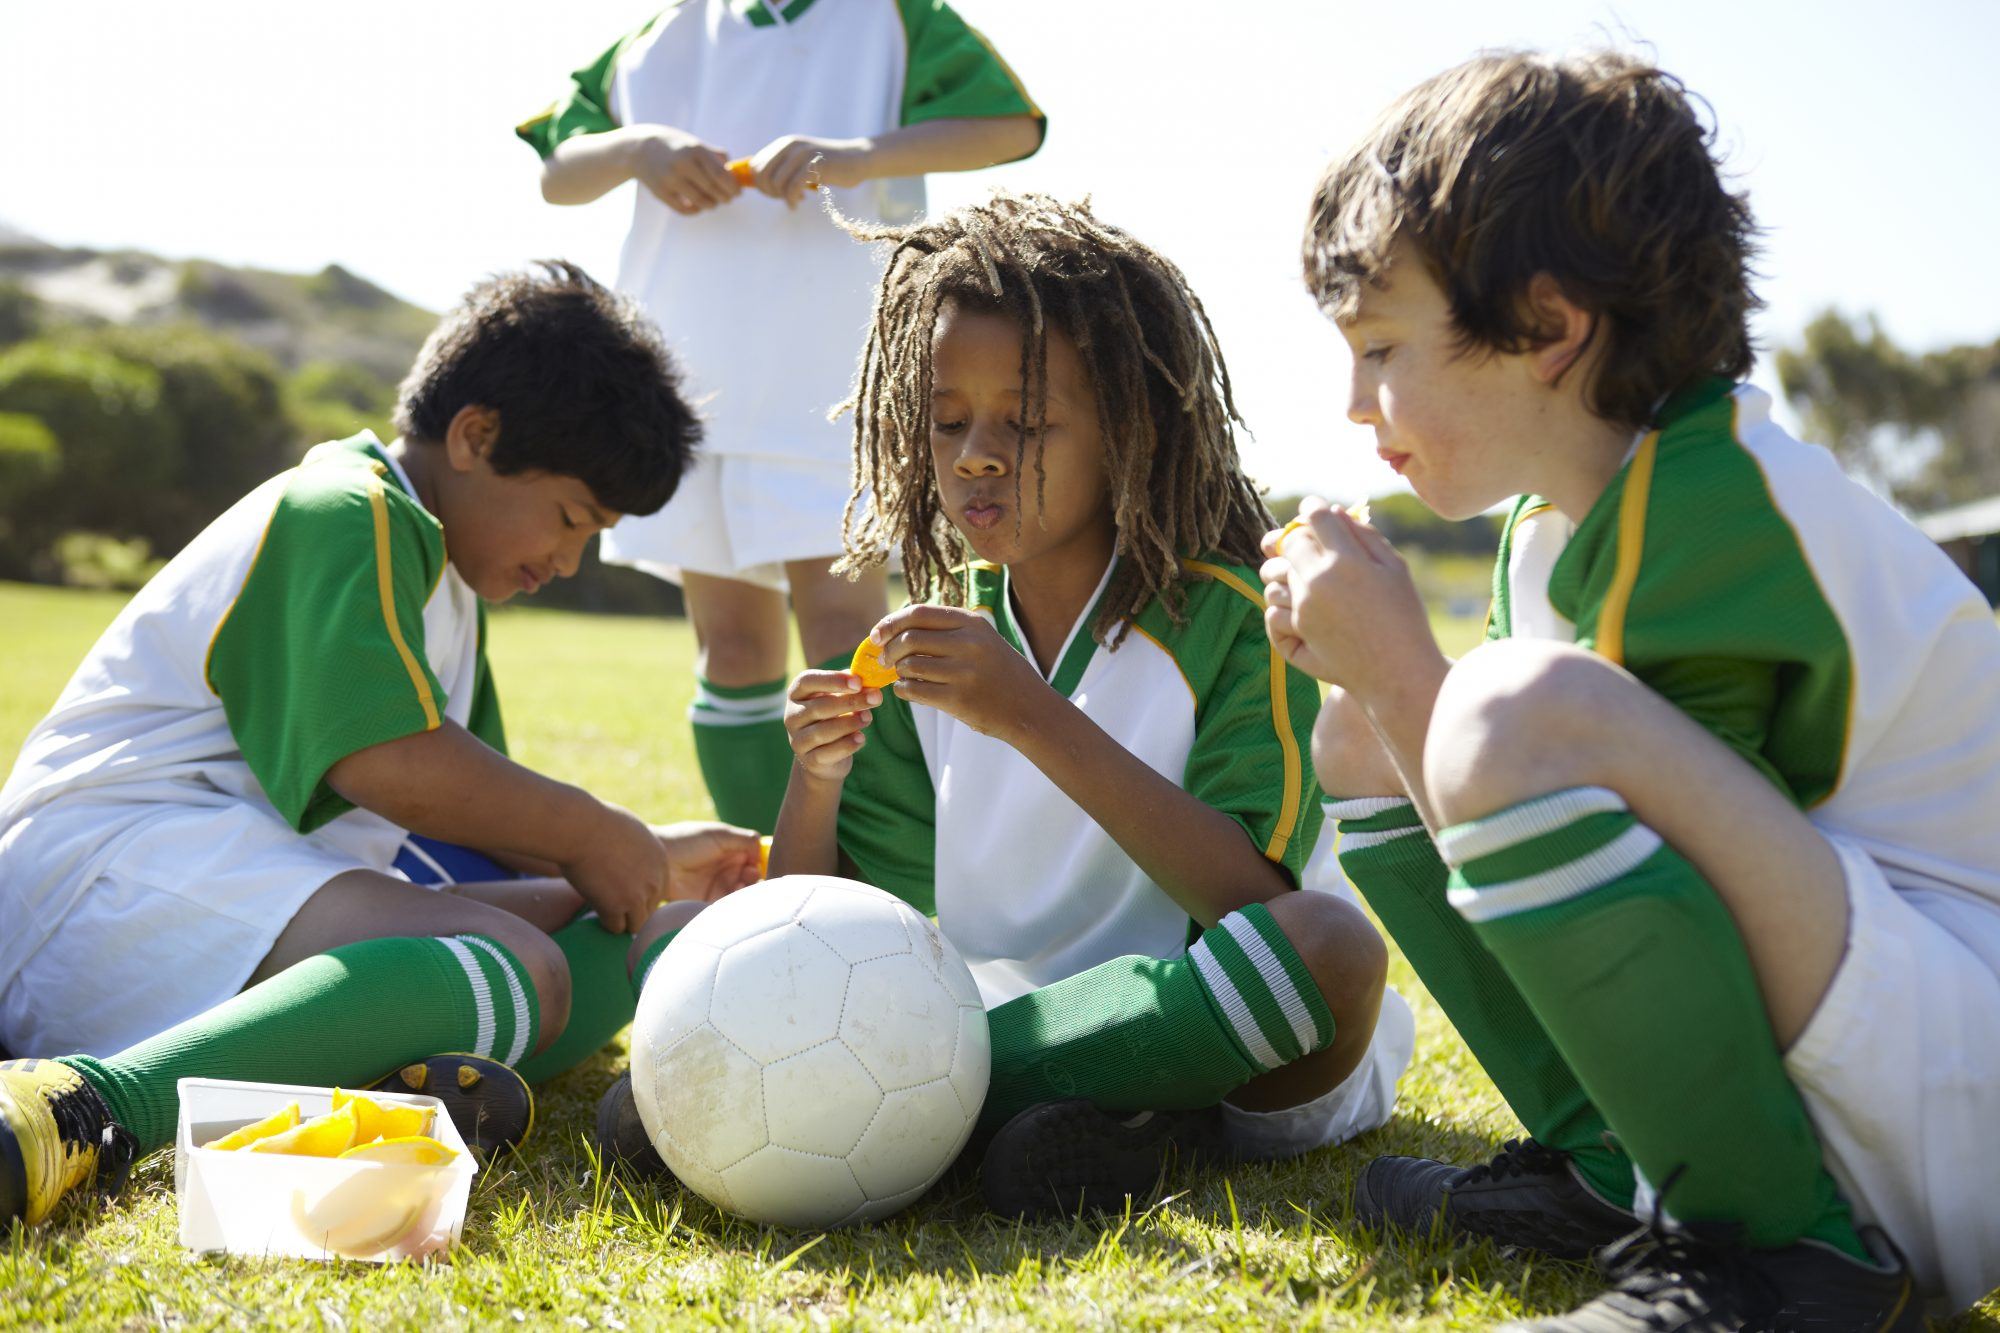 soccer-kids-eating.jpg